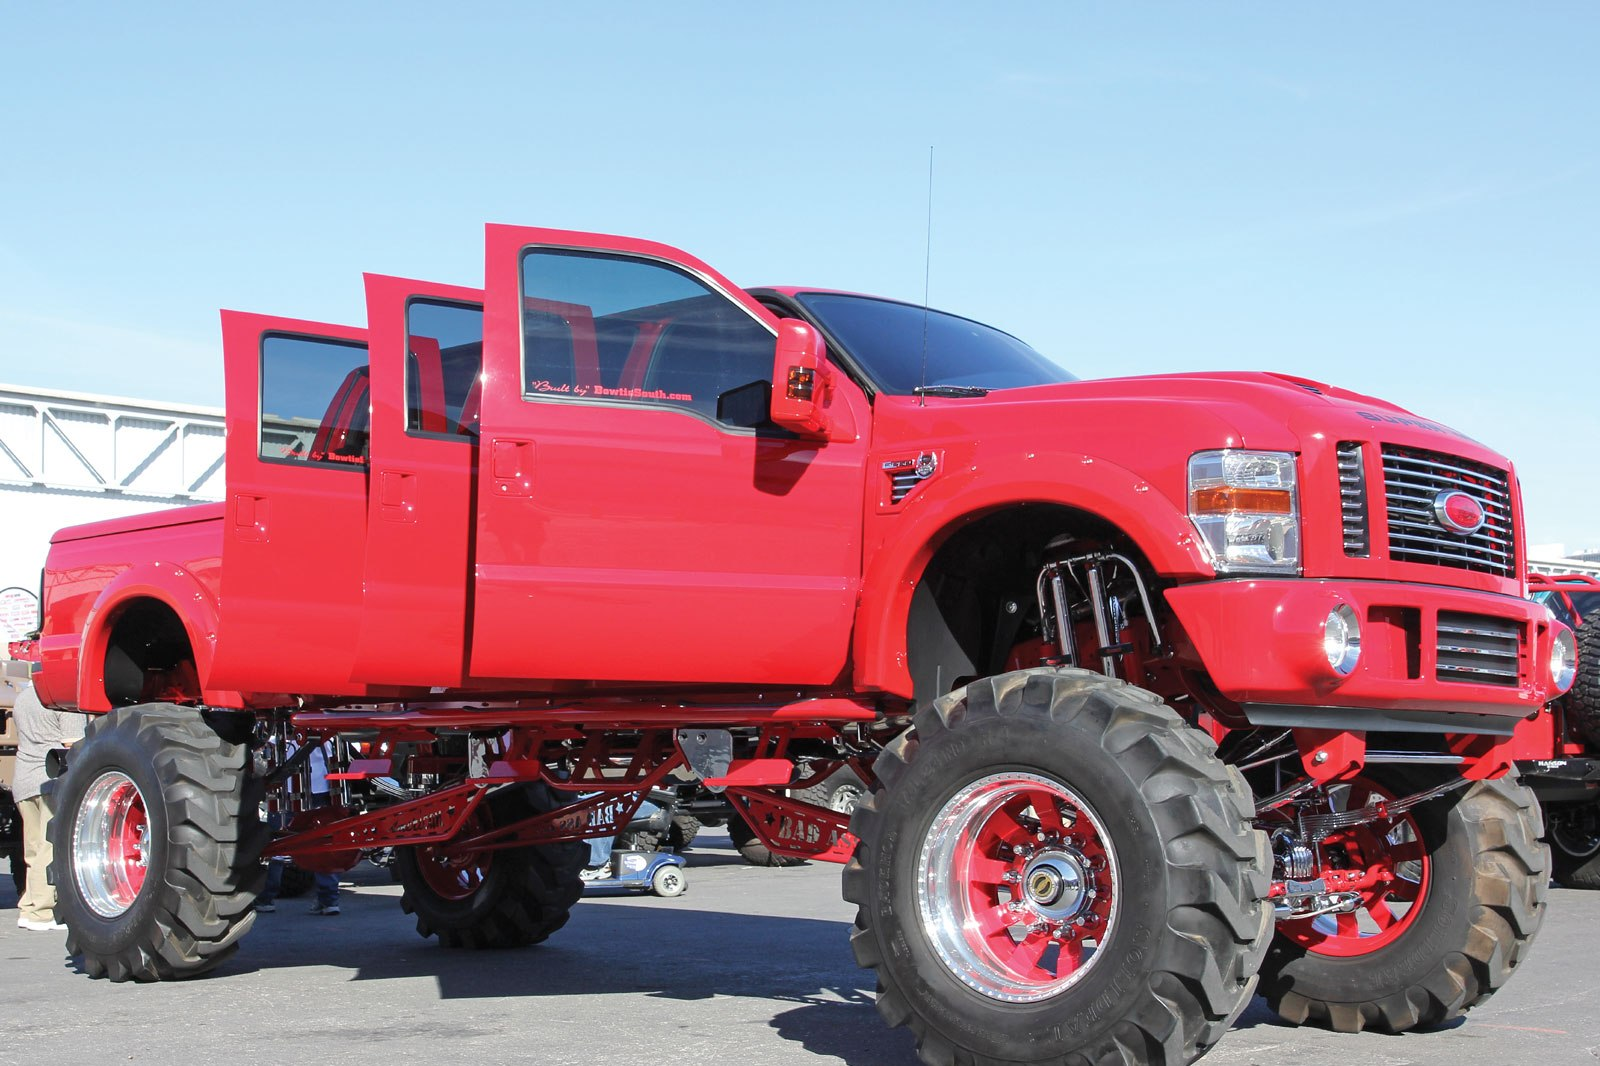 Ford Super Duty Limo - NO Car NO Fun! Muscle Cars and Power Cars! |